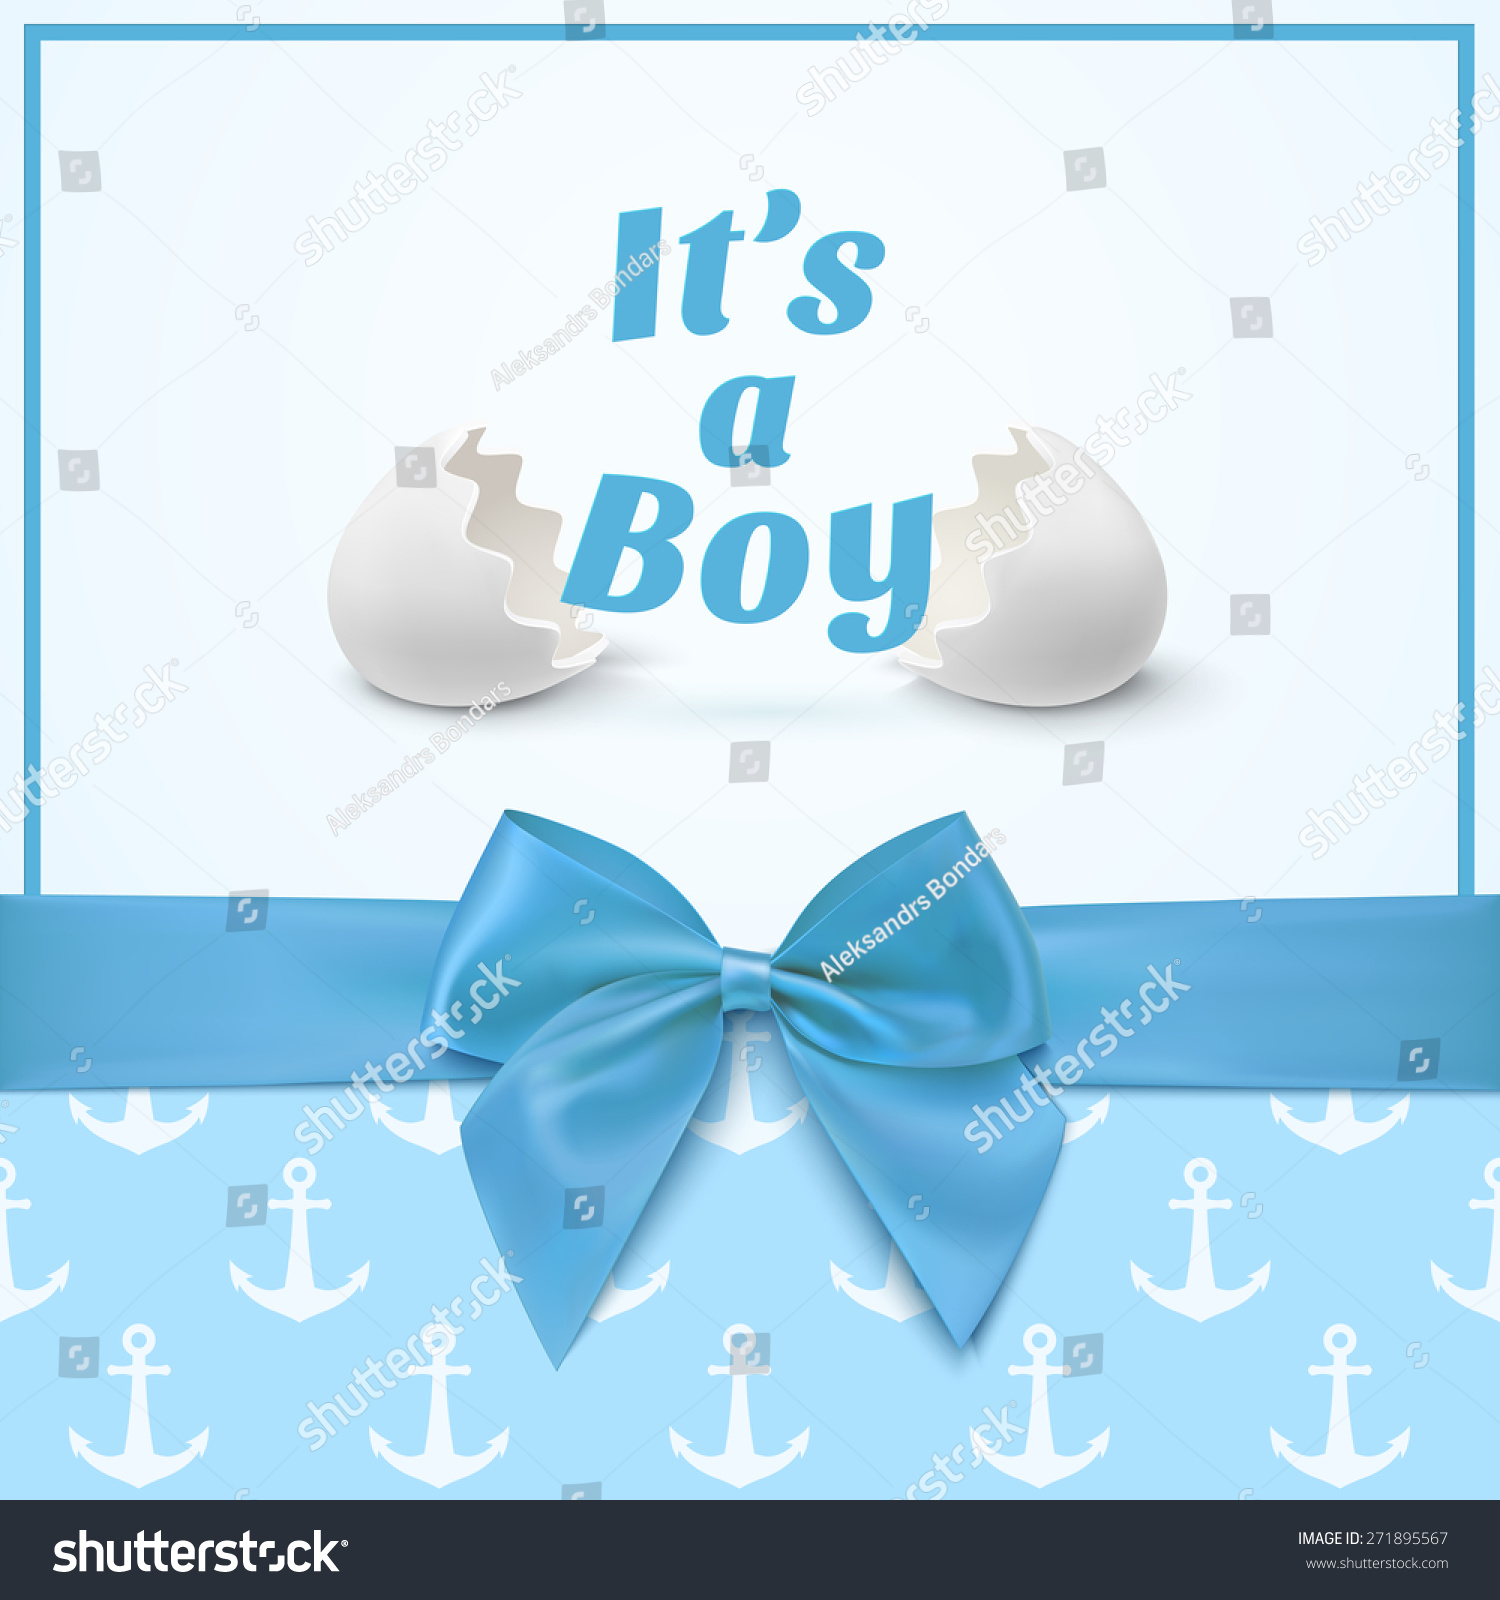 ItS A Boy Template For Baby Shower Celebration Or